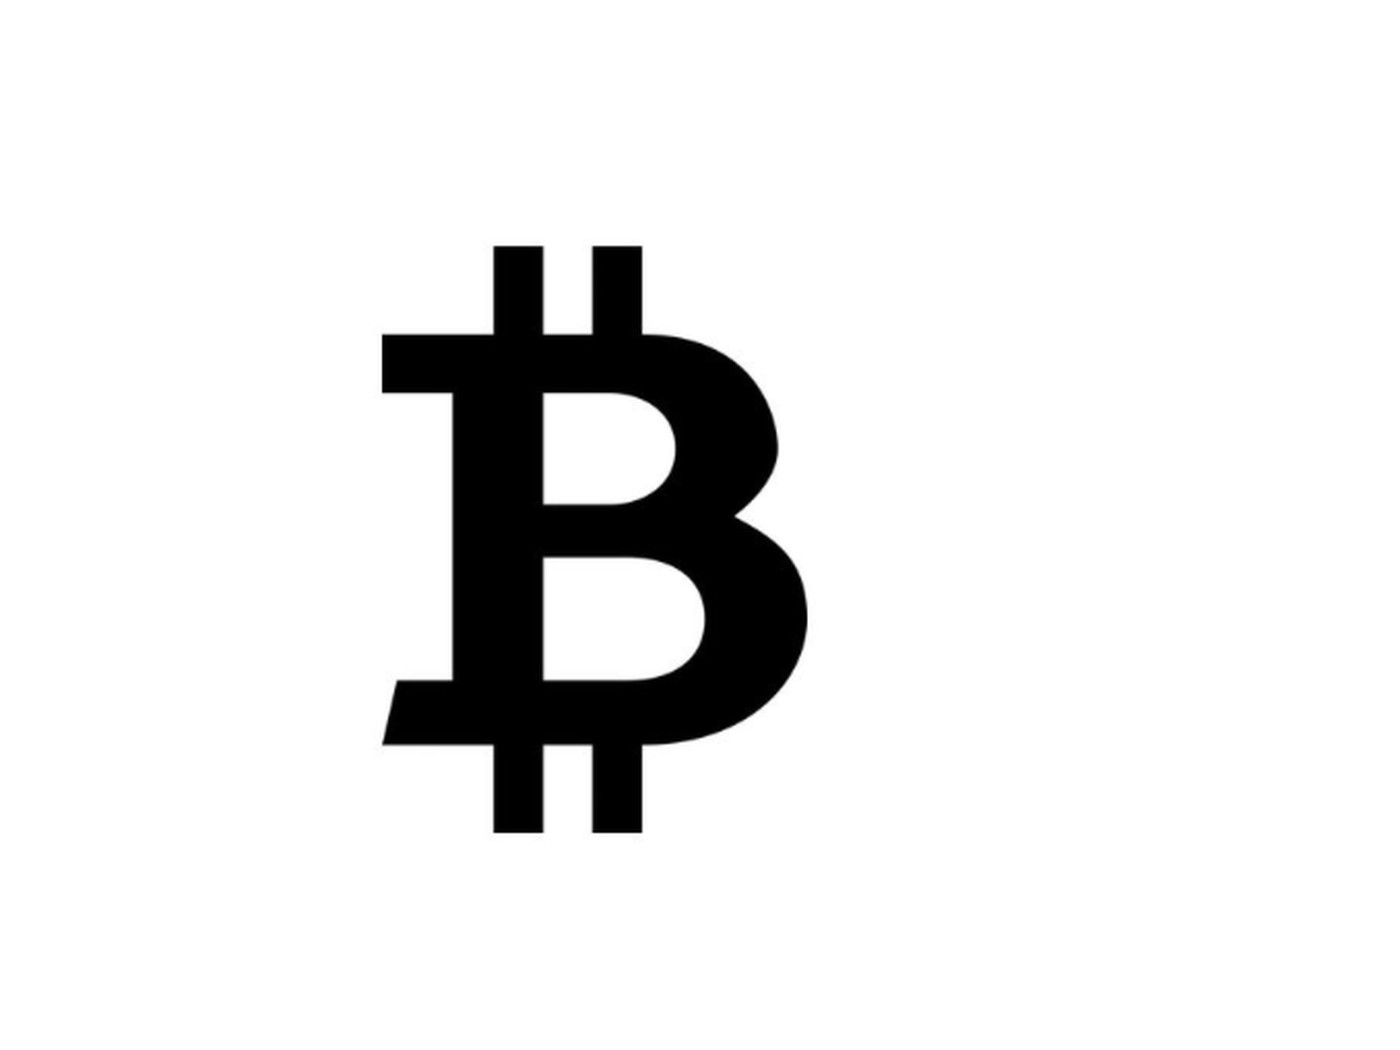 Your Mom Will Soon Be Able To Text The Bitcoin Symbol Along With A